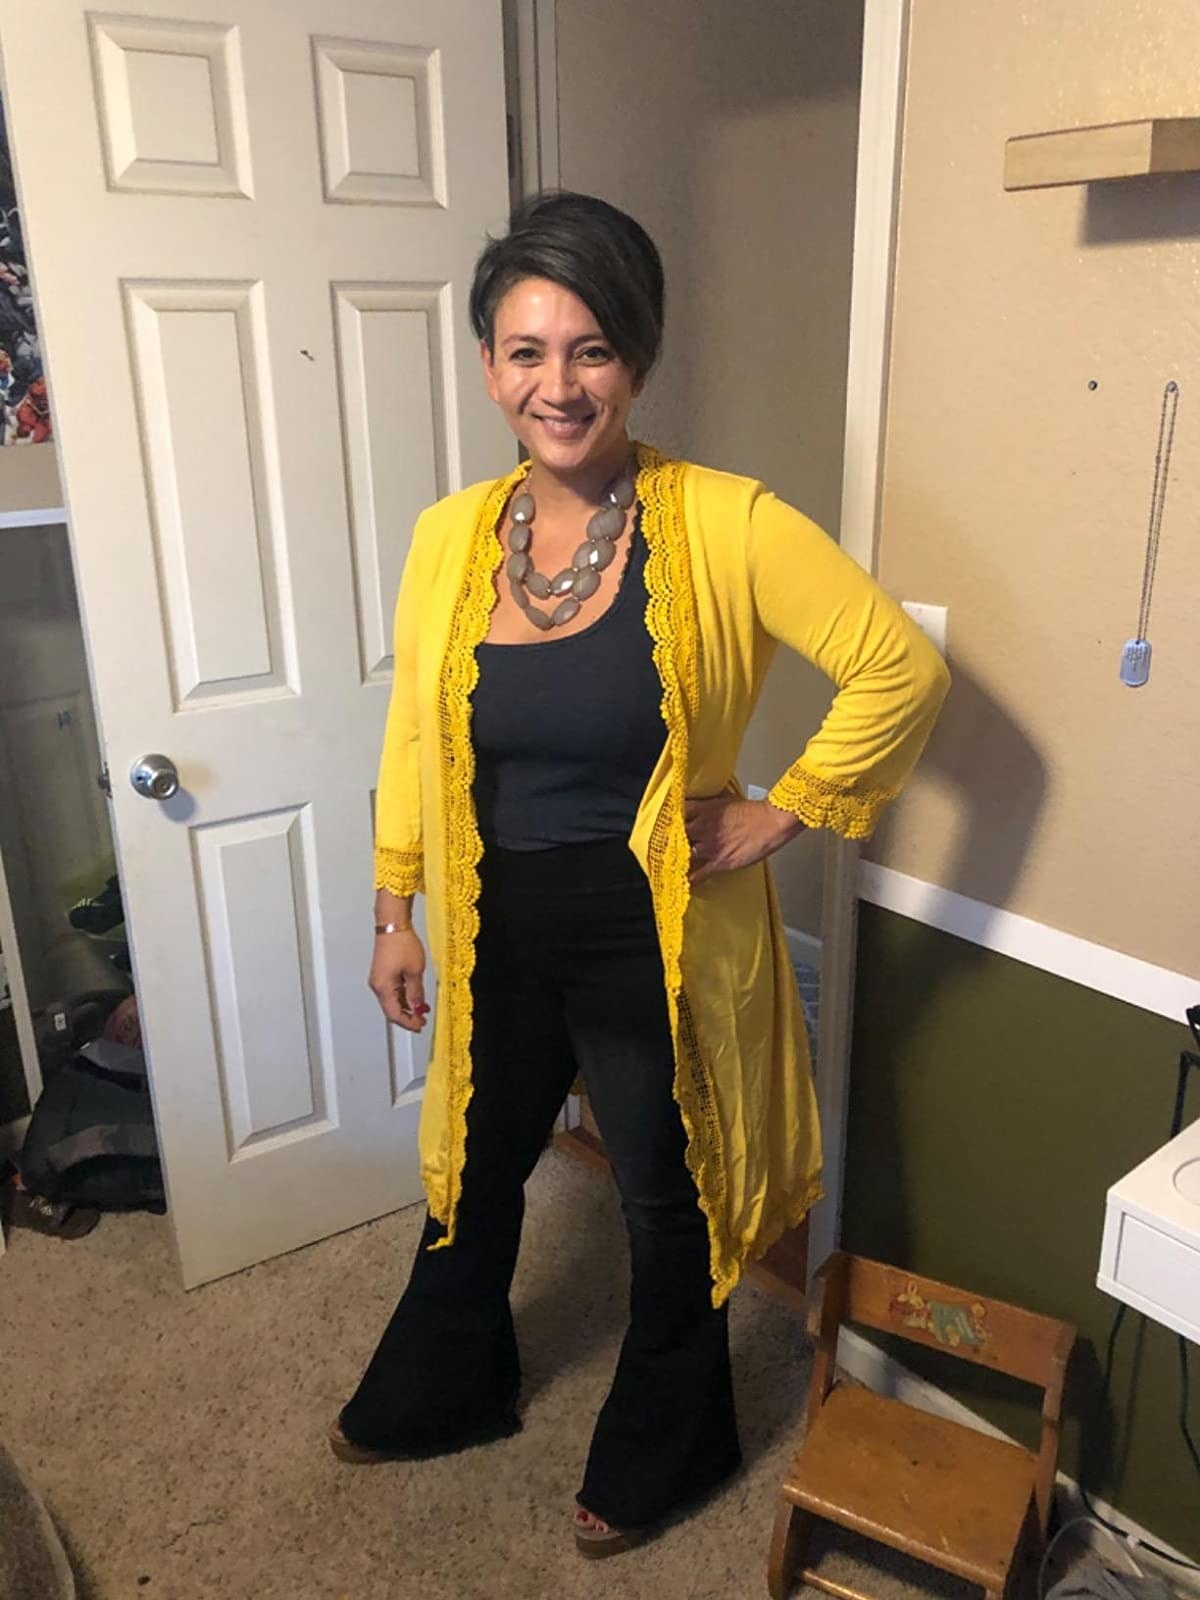 Reviewer wearing the knee-length cardigan in yellow